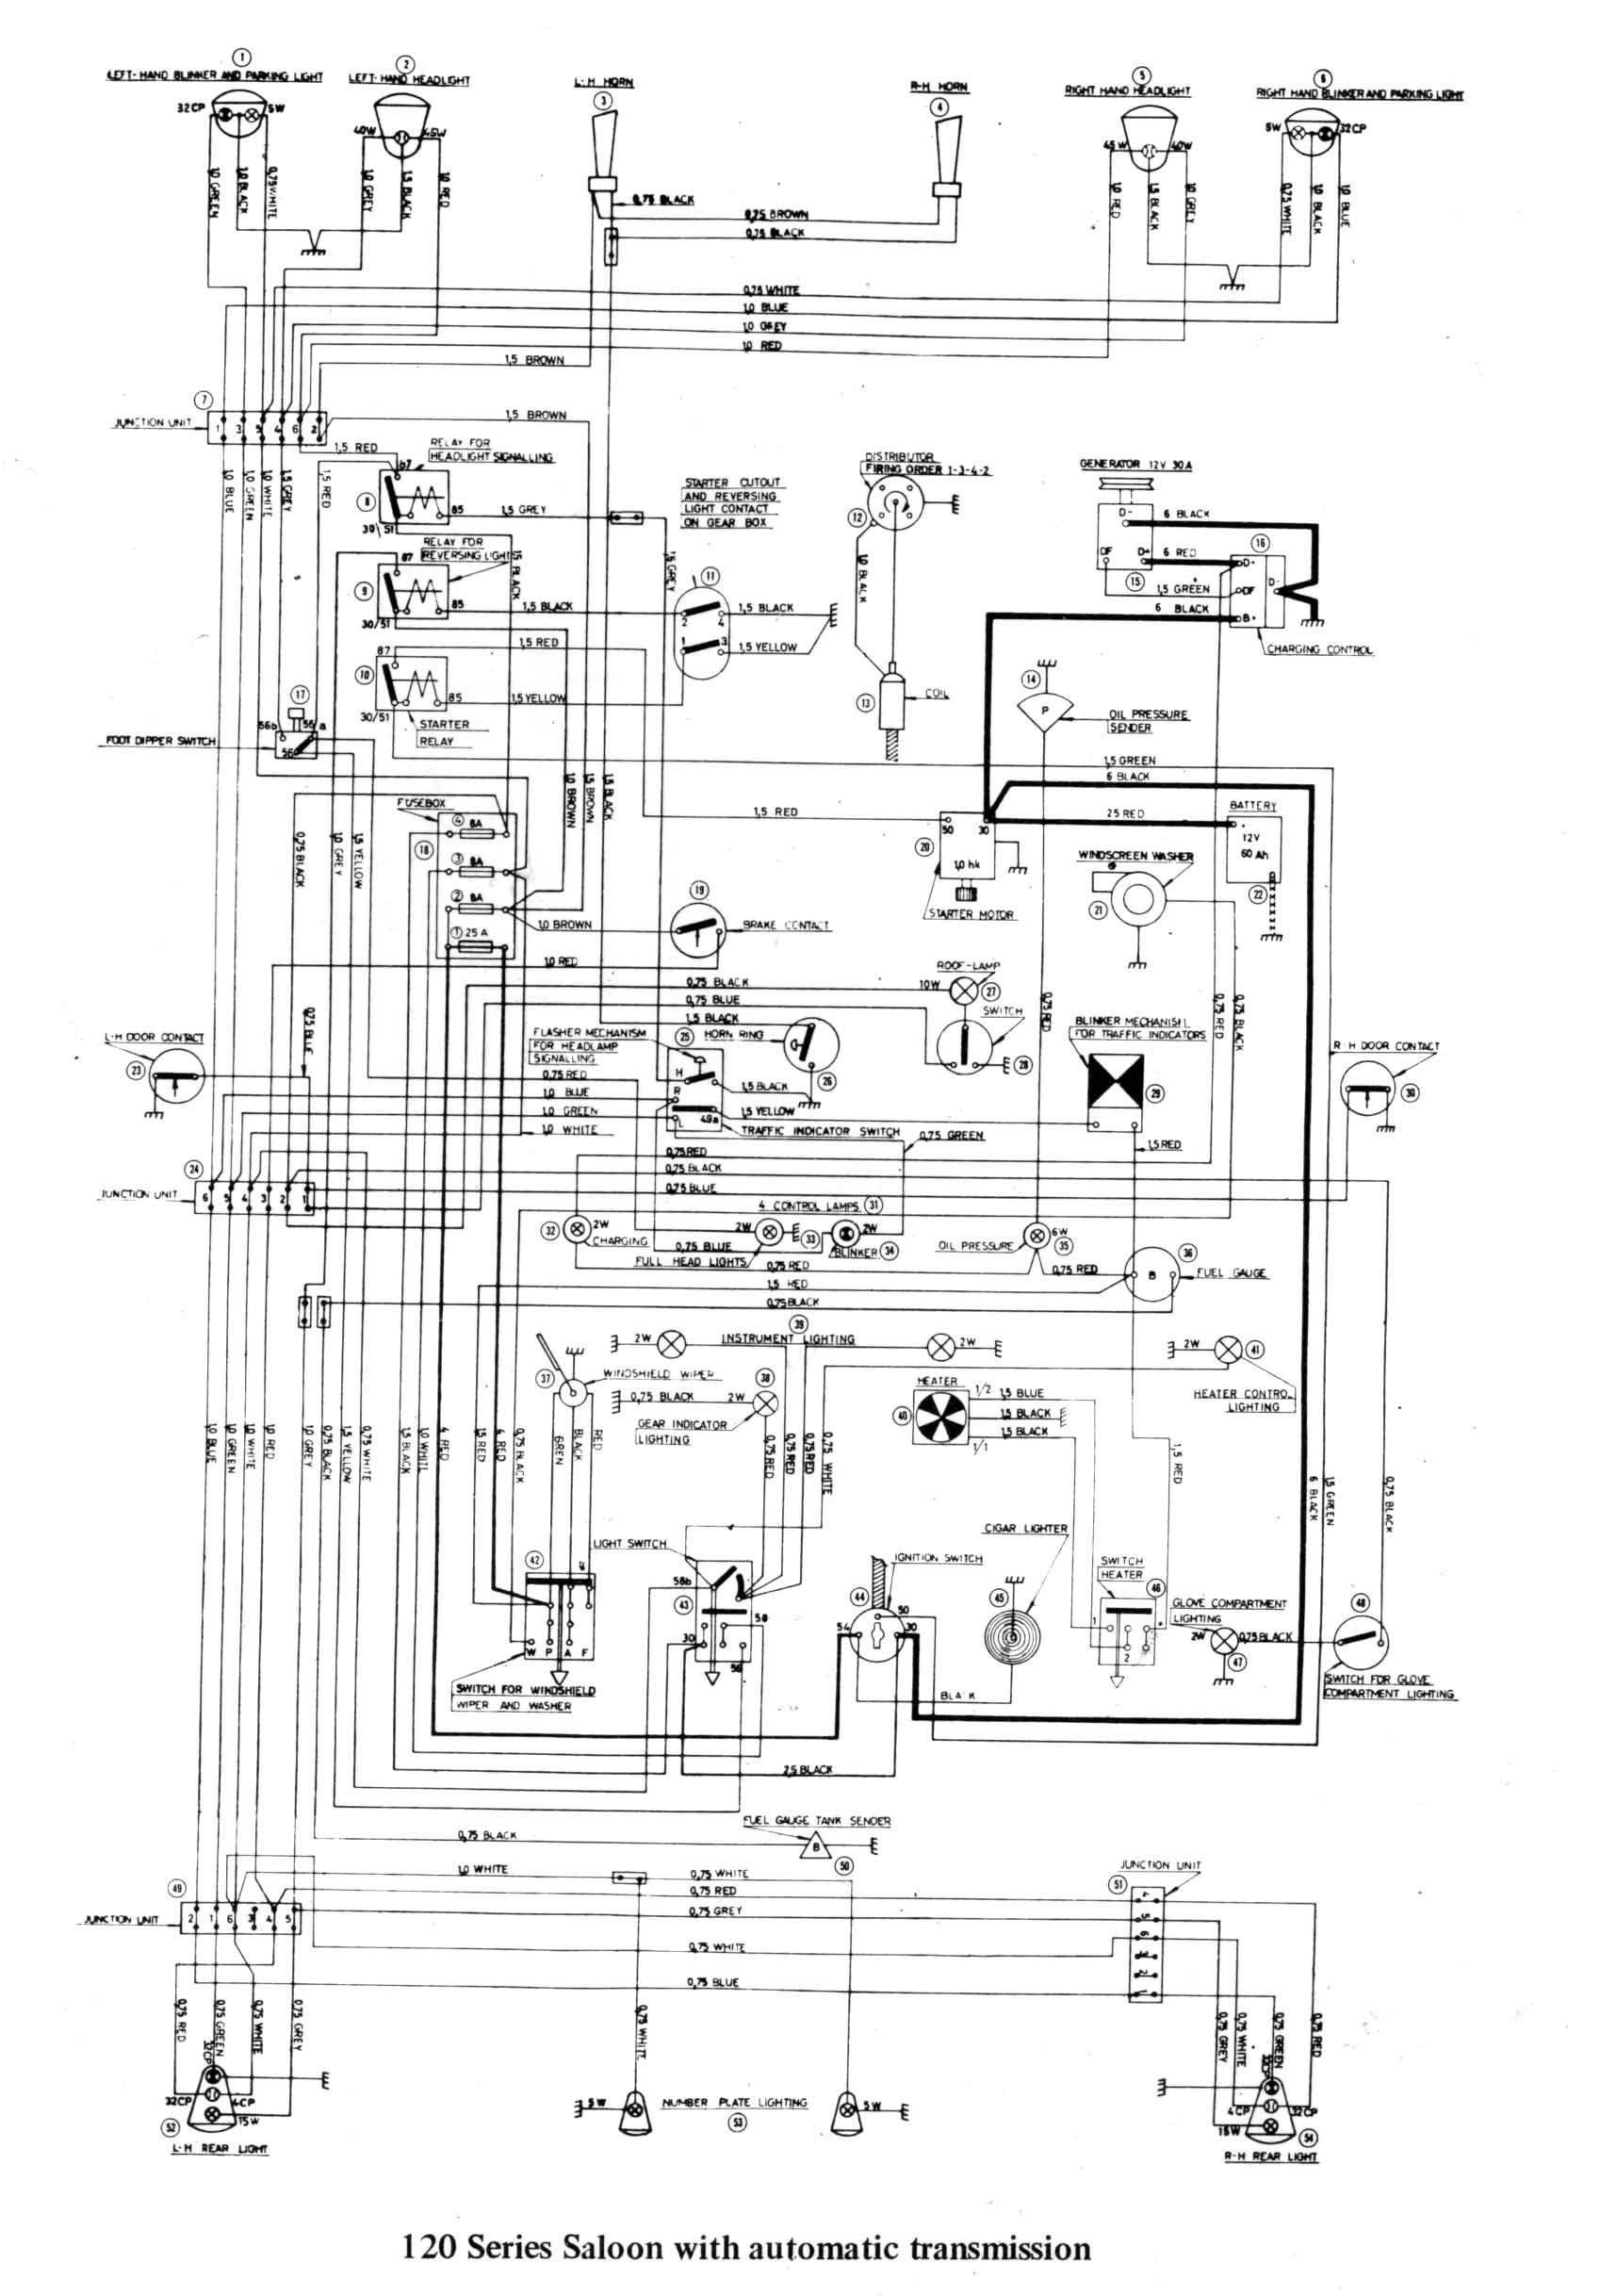 Unique Wiring Diagram For A Baseboard Heater Electrical Wiring Diagram Trailer Wiring Diagram Alternator